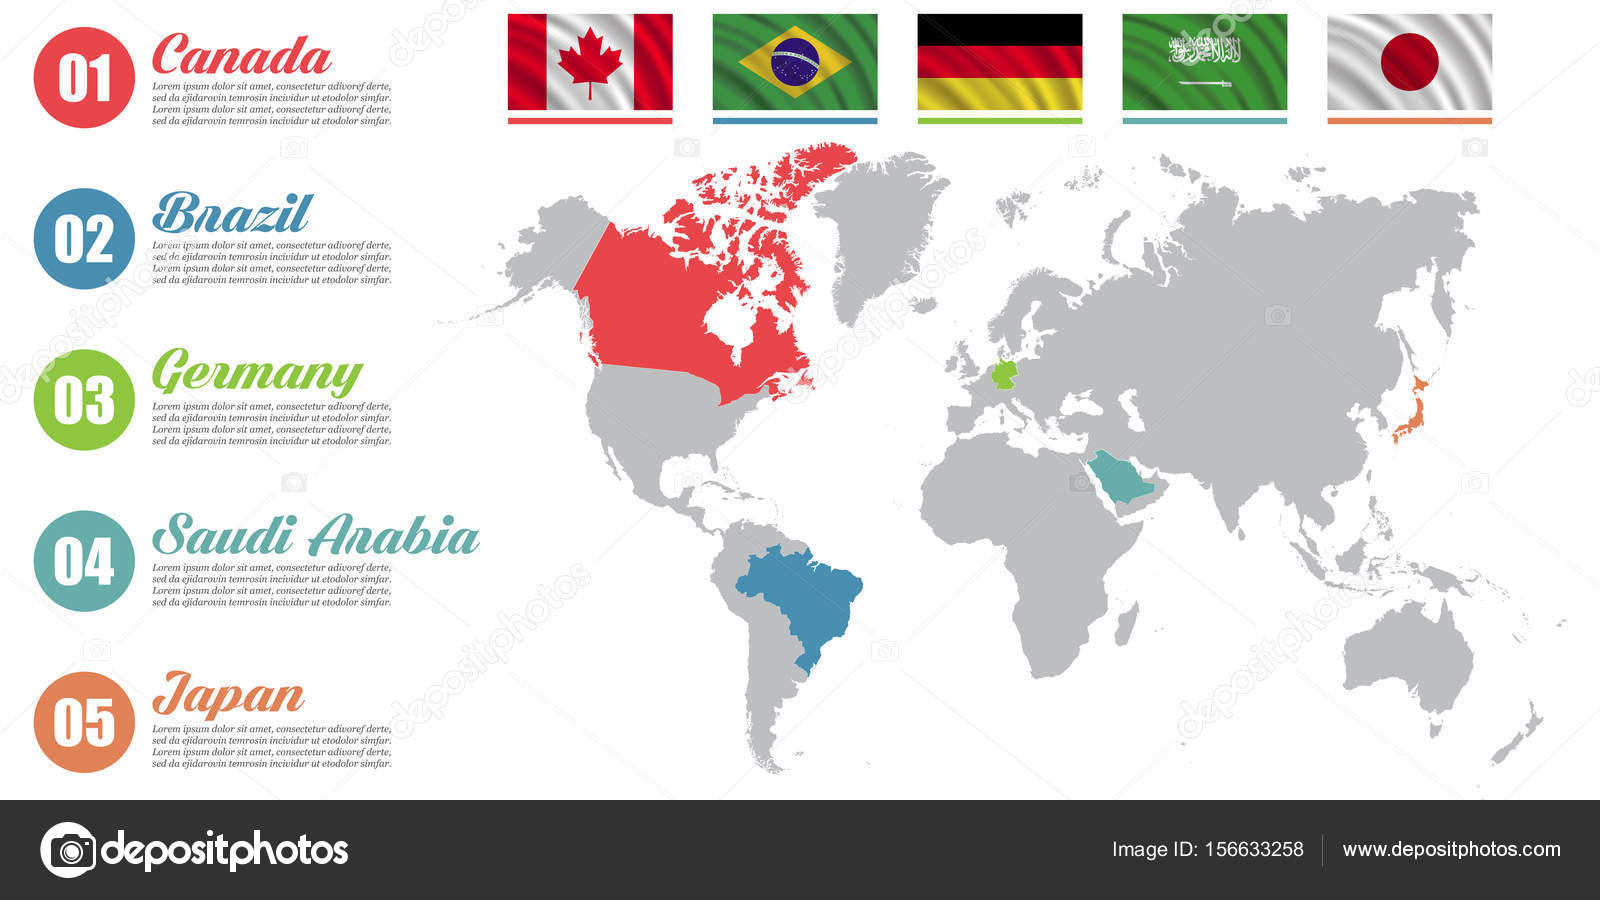 World map infographic slide presentation canada brazil germany world map infographic slide presentation canada brazil germany saudi arabia japan business marketing concept color countries with flags vector by gumiabroncs